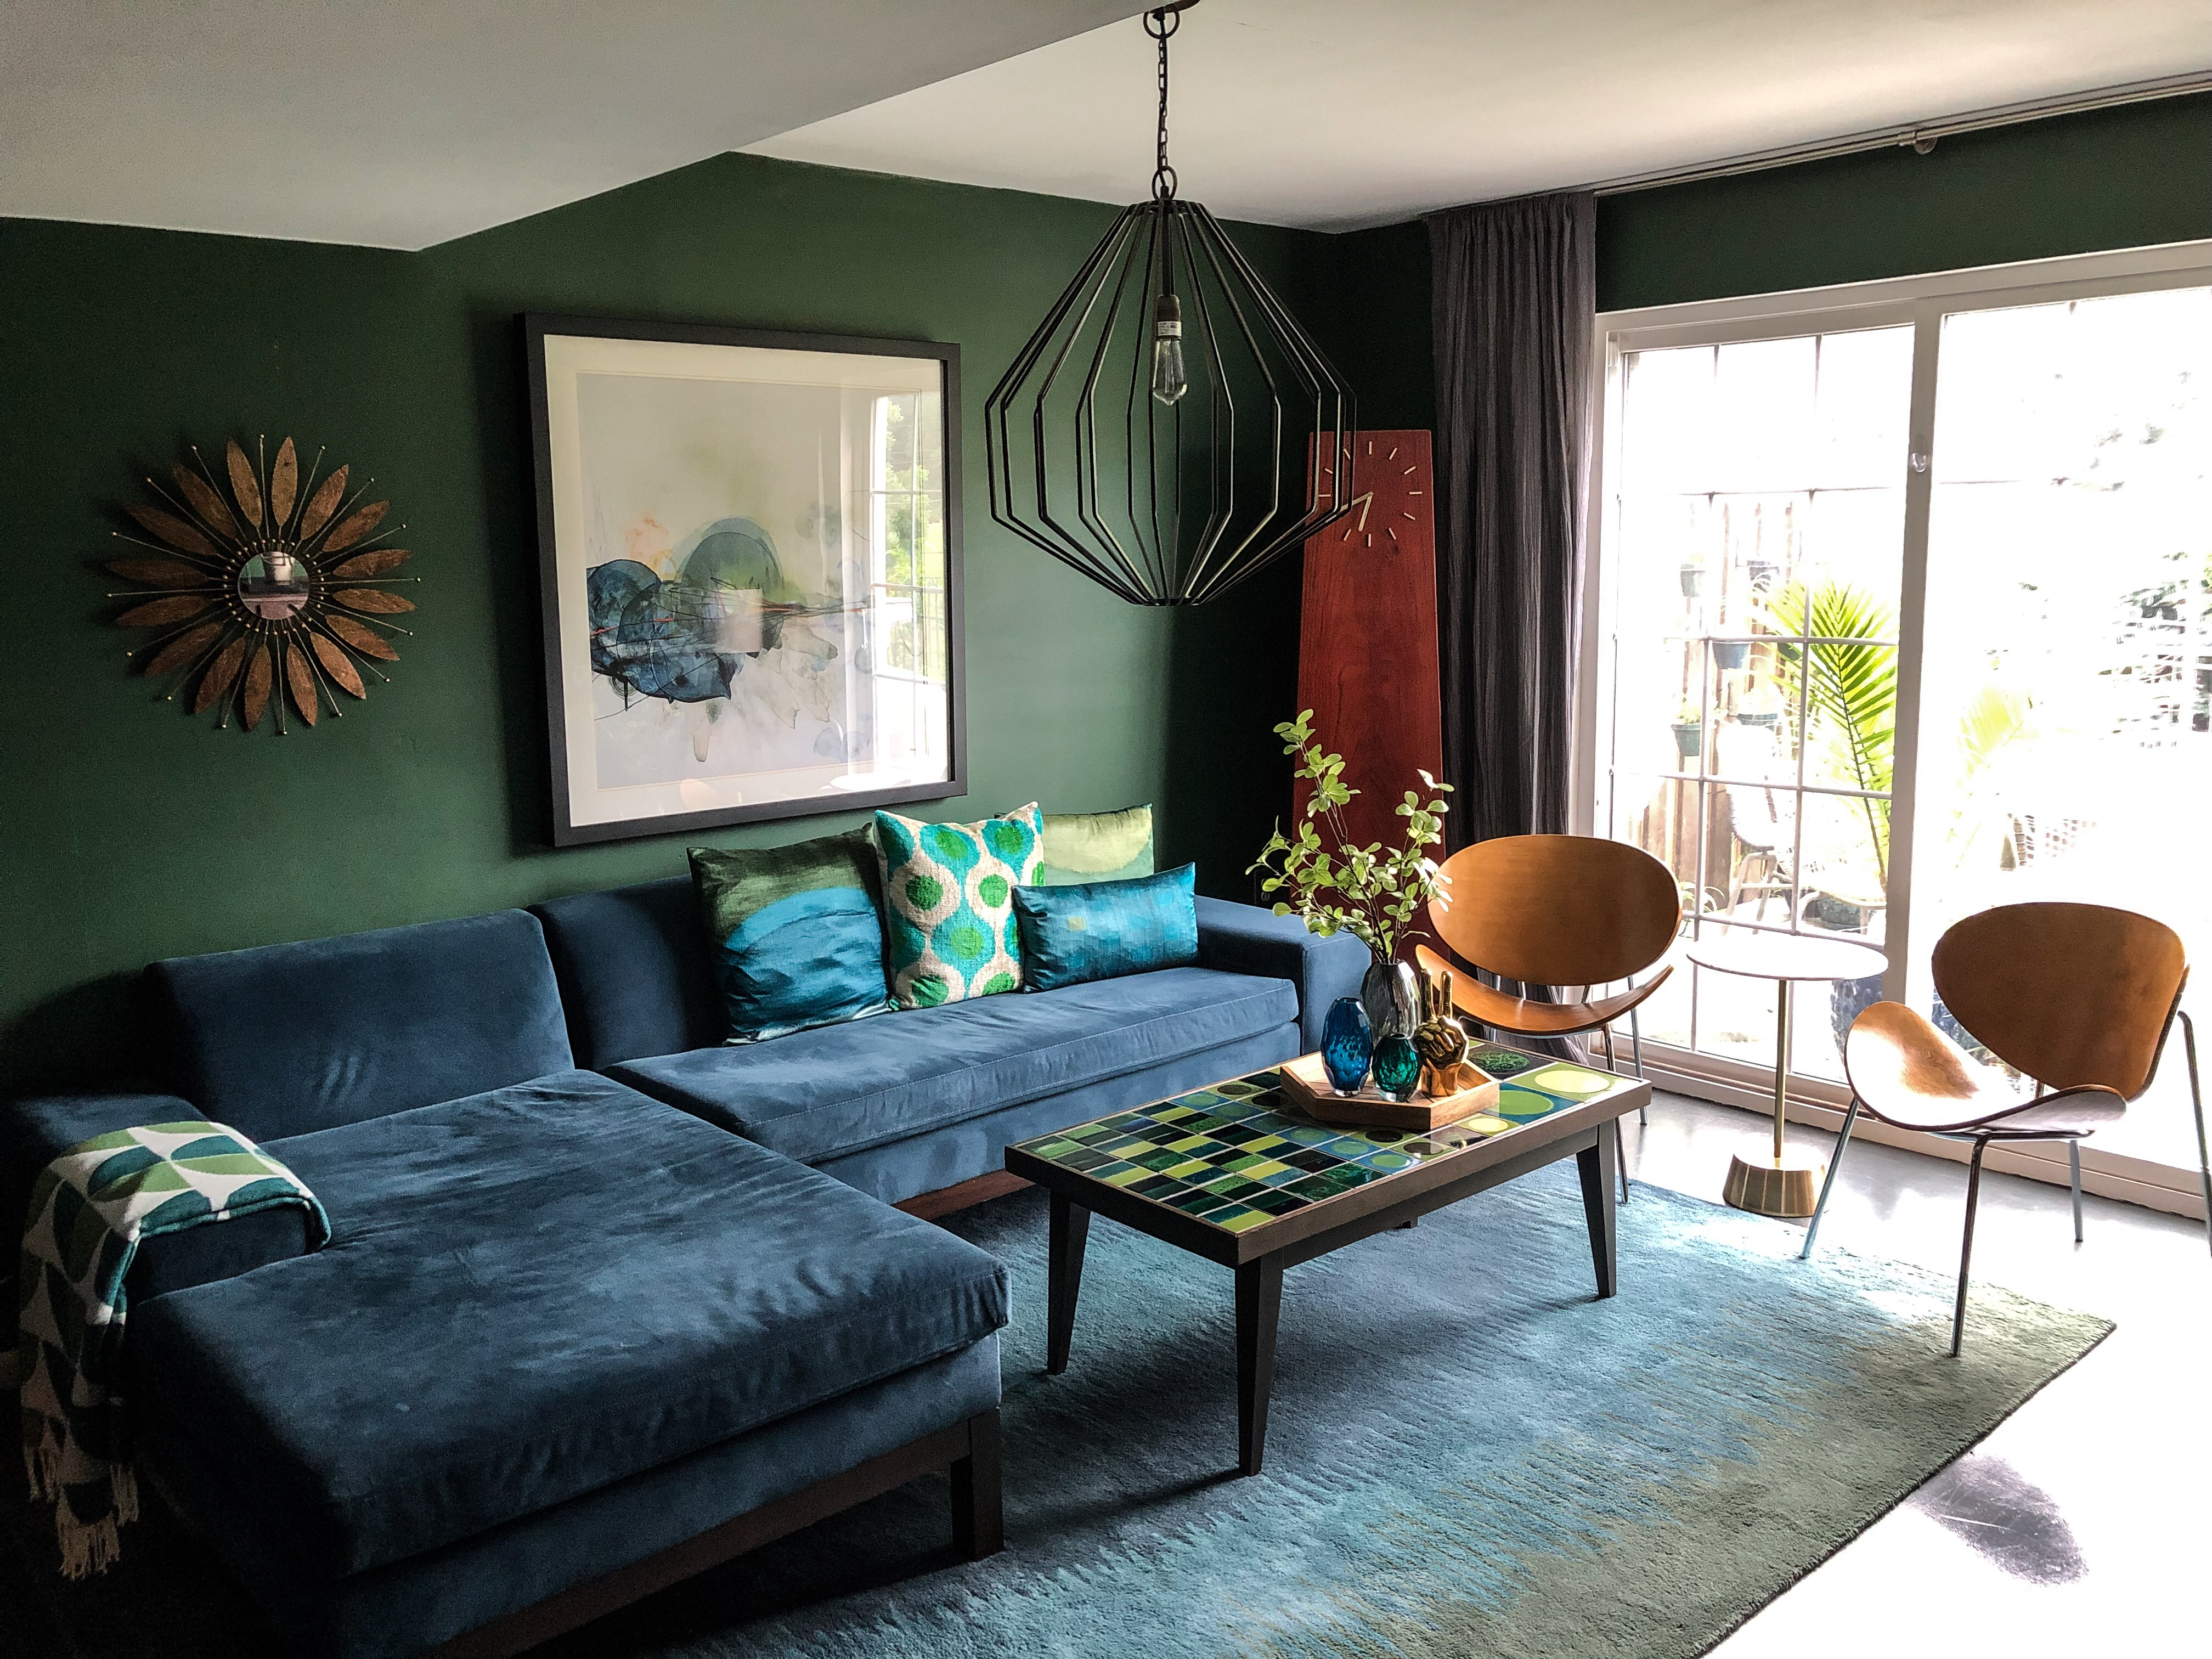 Townhouse Decorating Ideas And Inspiration Apartment Therapy